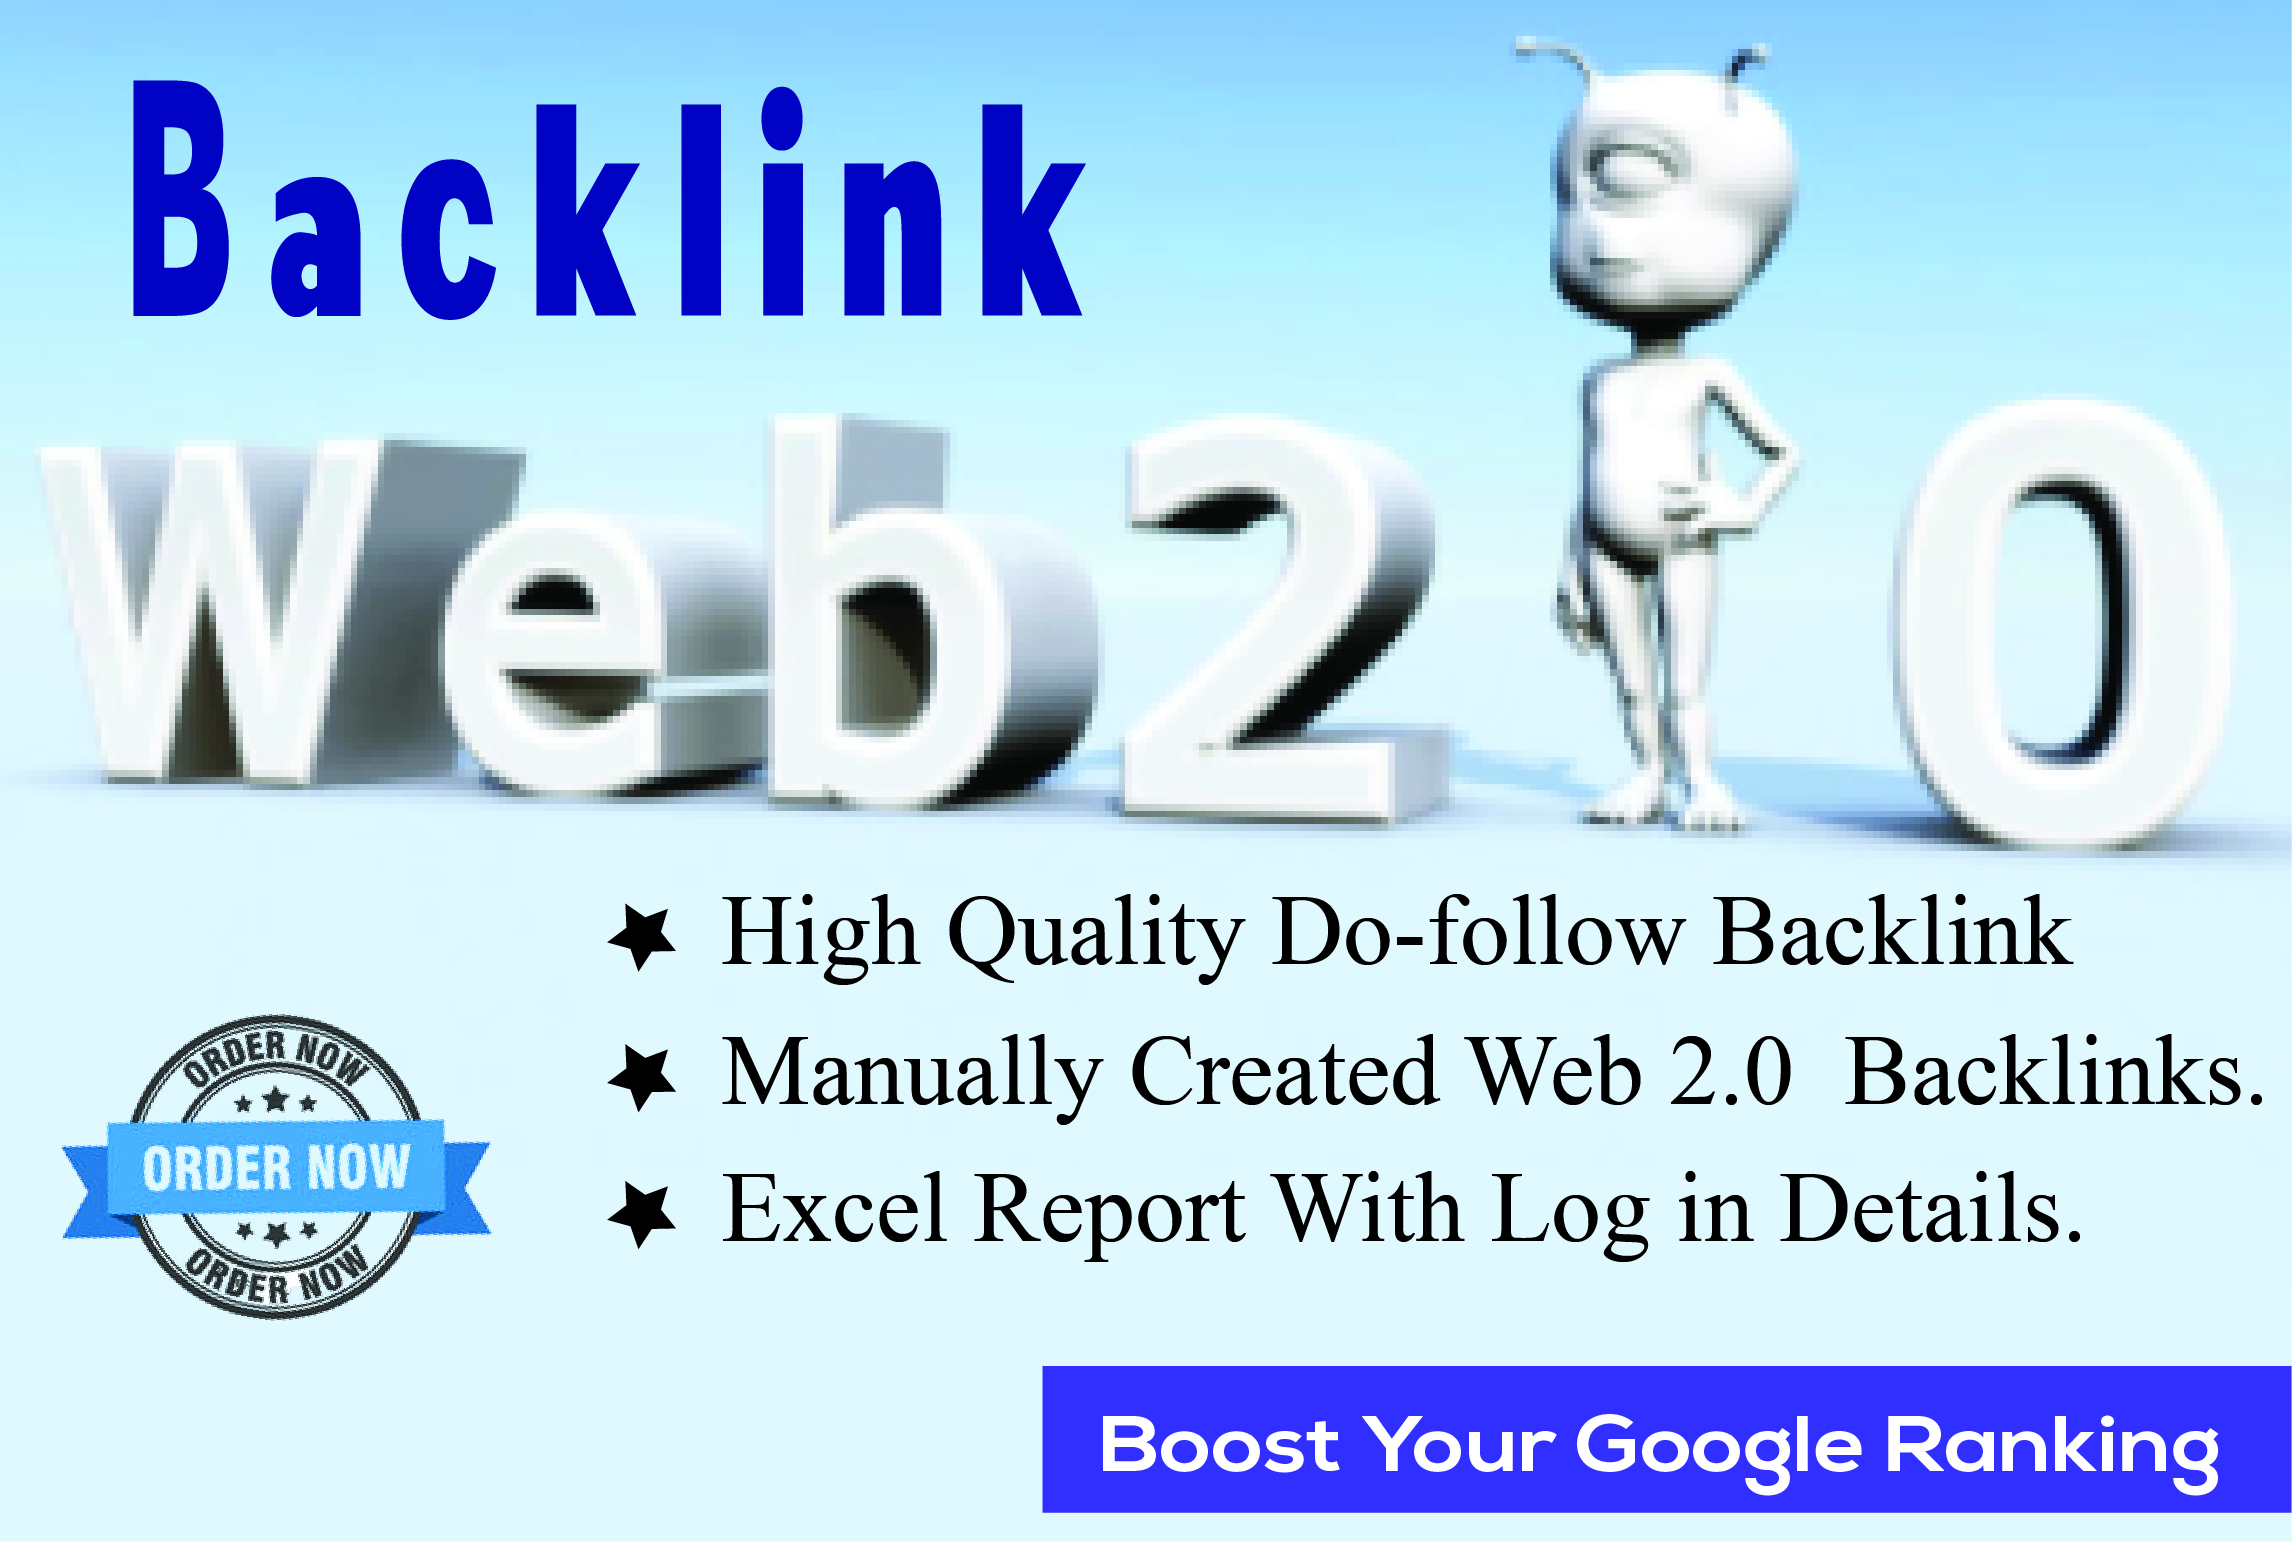 I Will Creation Web 2.0 Backlink For Your Website